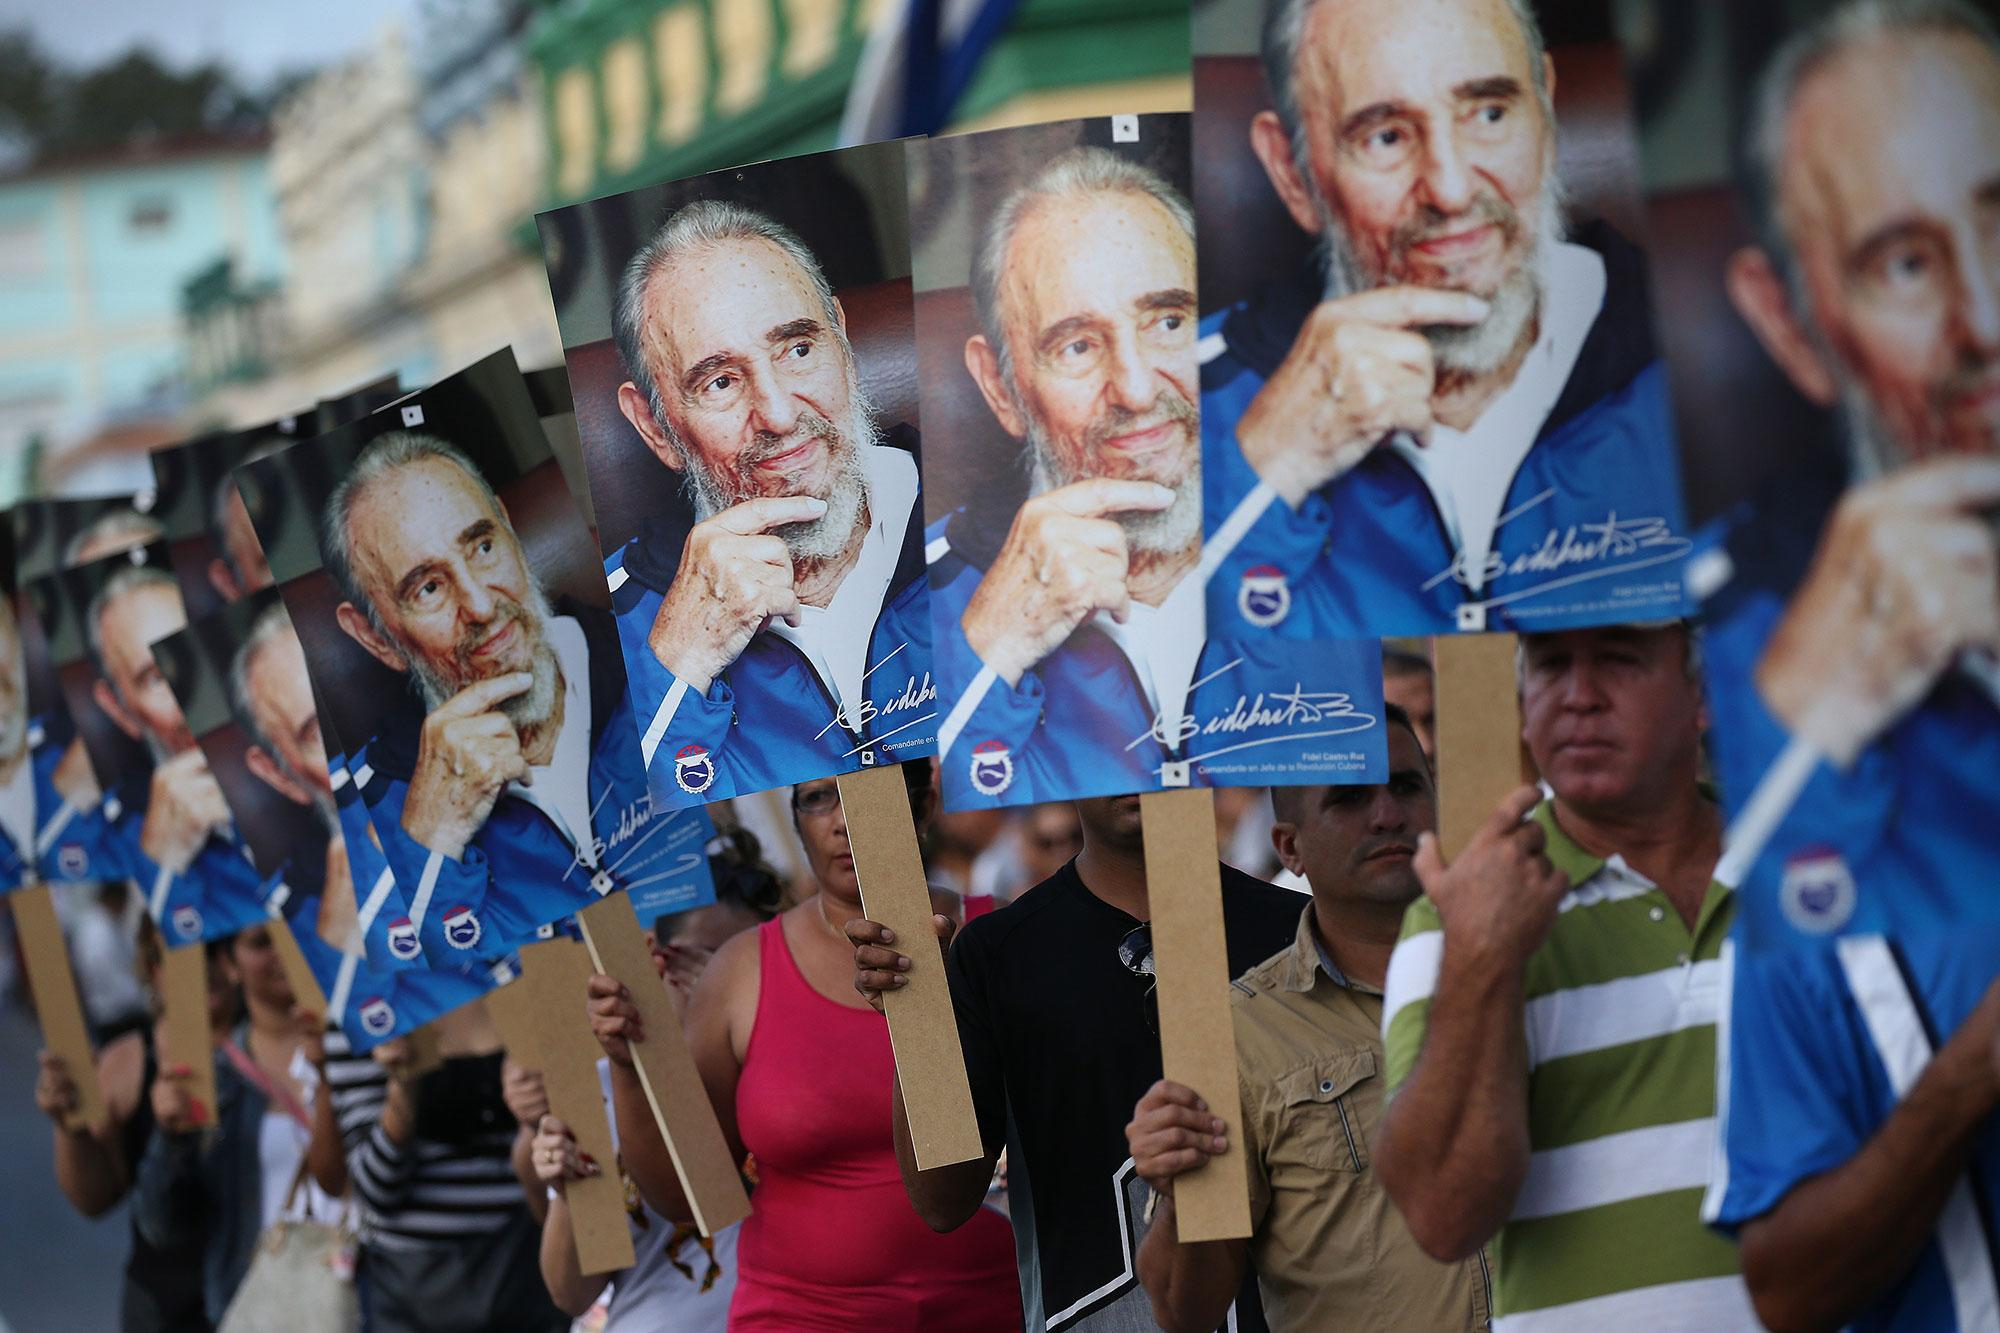 <p>People hold posters while awaitng the arrival of the caravan carrying the ashes of Fidel Castro in Las Tunas, Cuba on Dec. 2, 2016. (Carlos Barria/Reuters) </p>